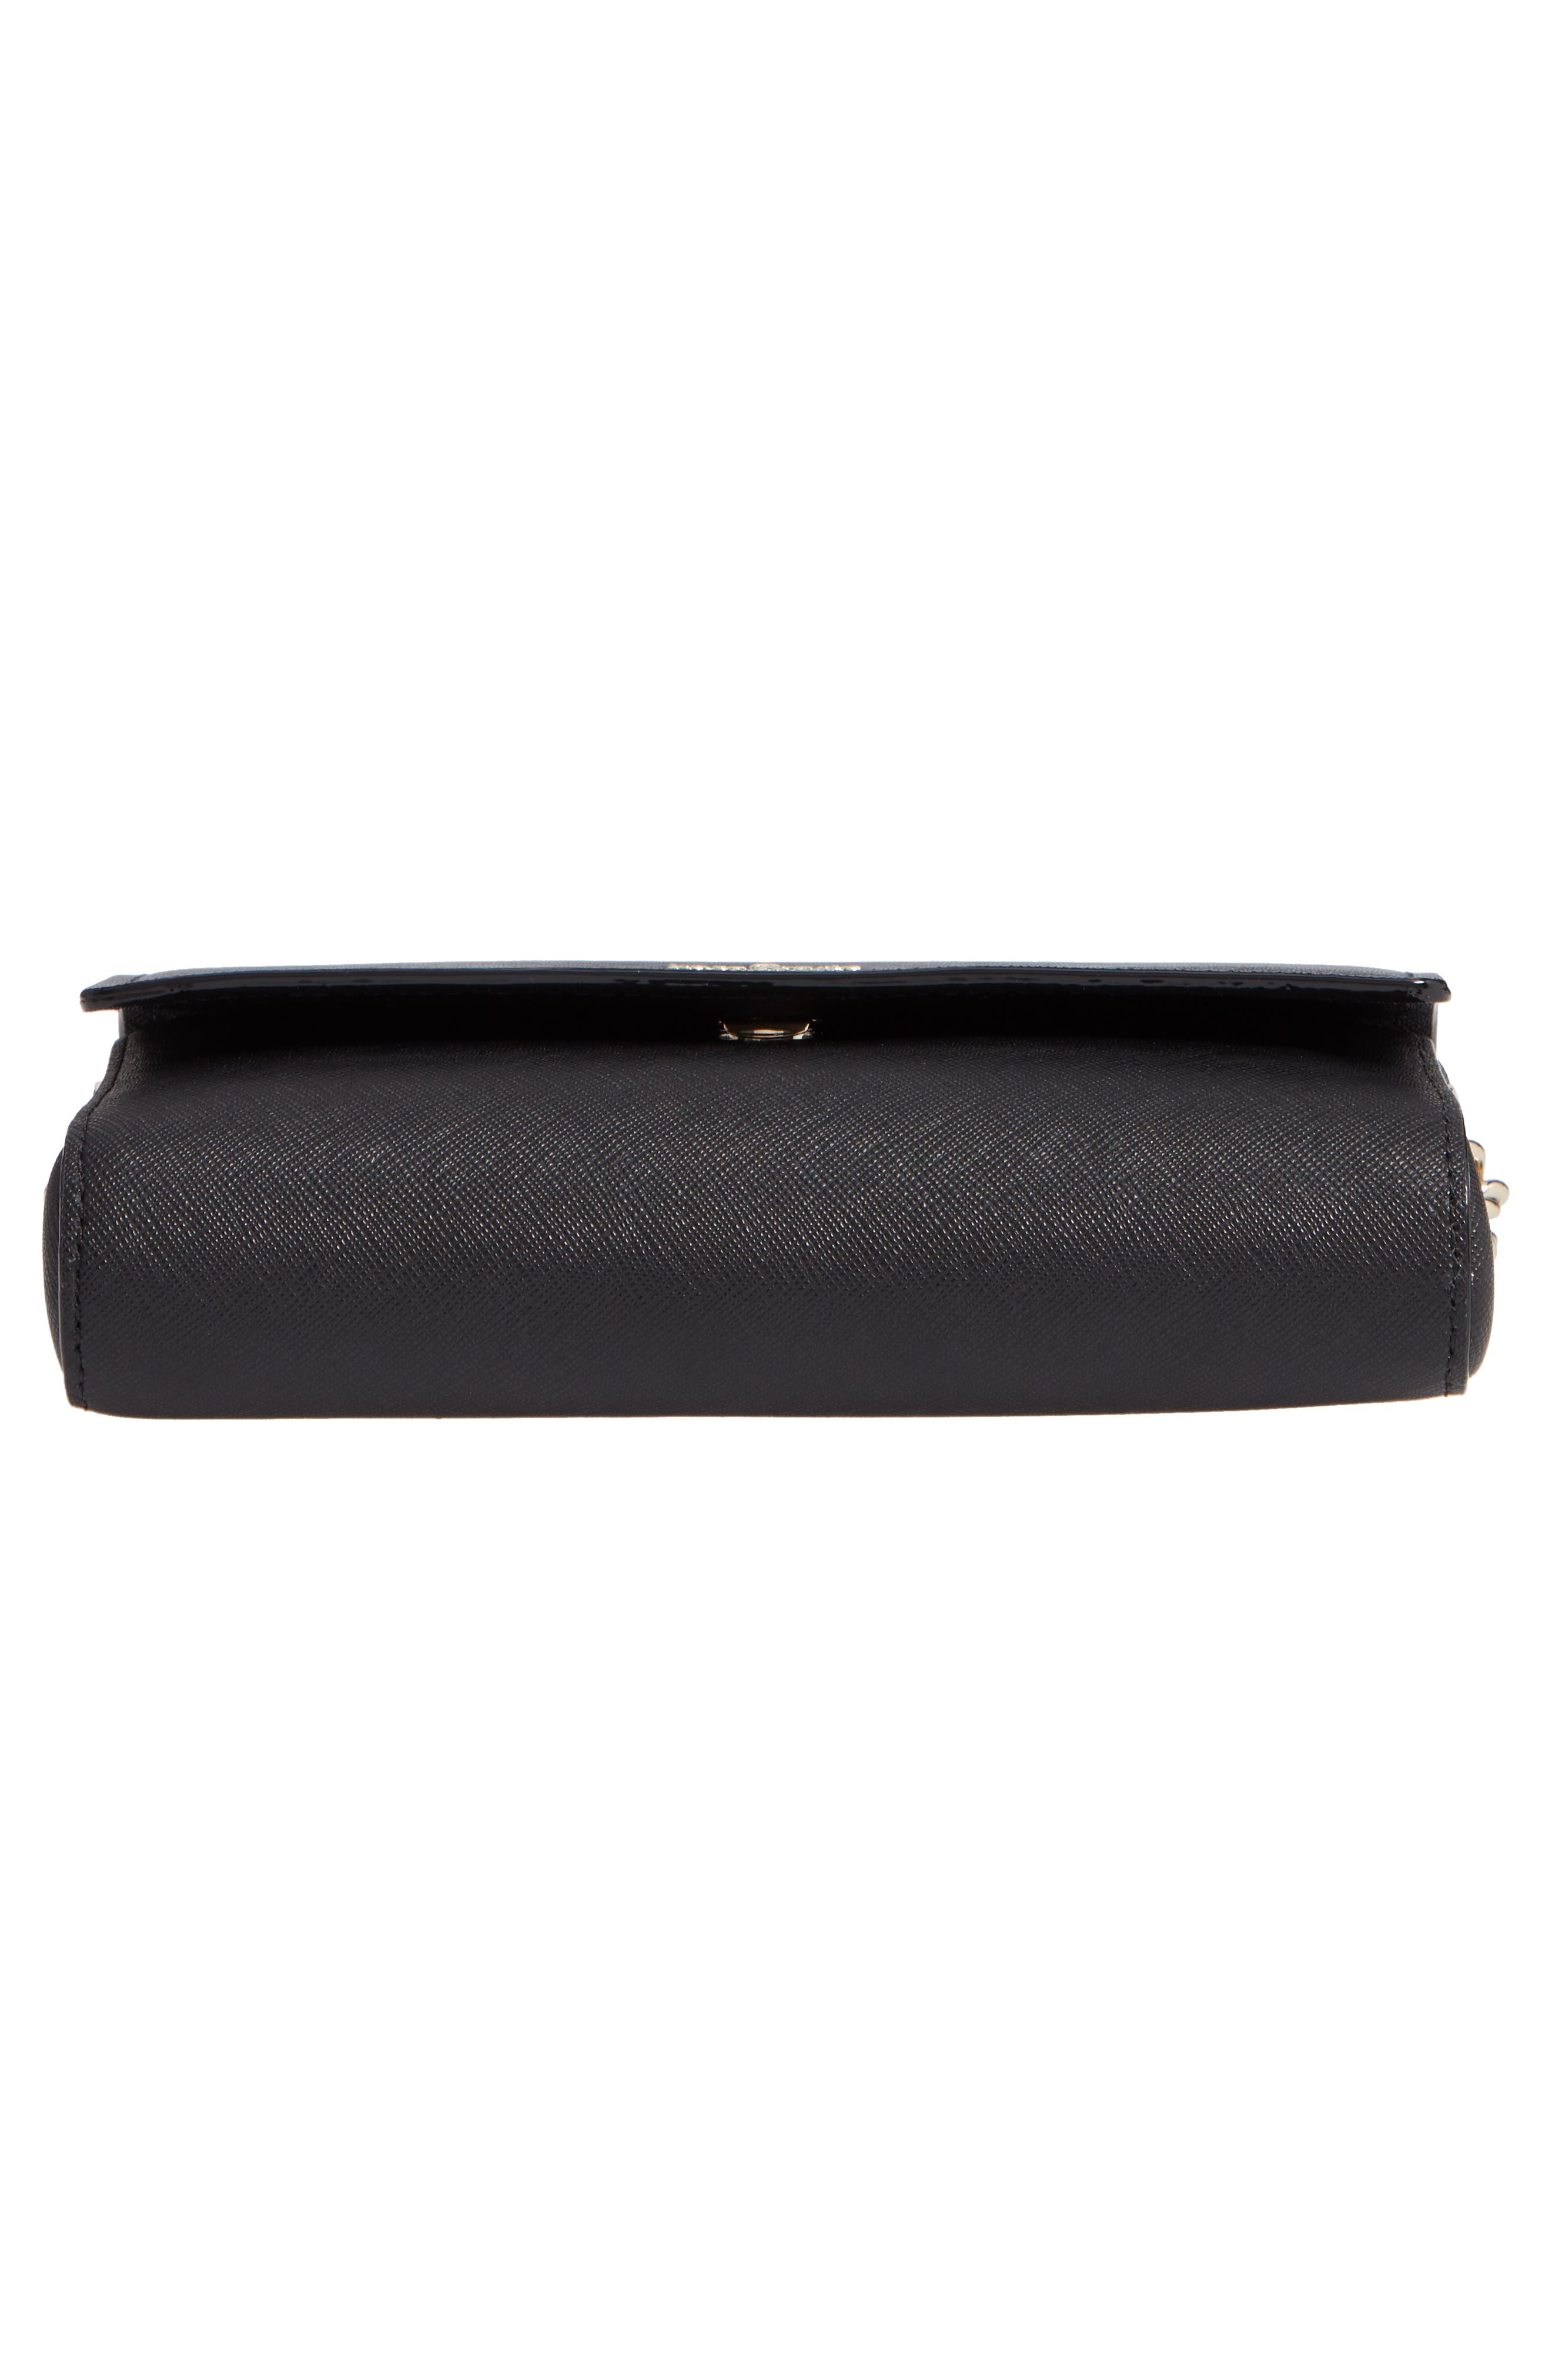 cameron street - delilah belt bag,                             Alternate thumbnail 7, color,                             BLACK